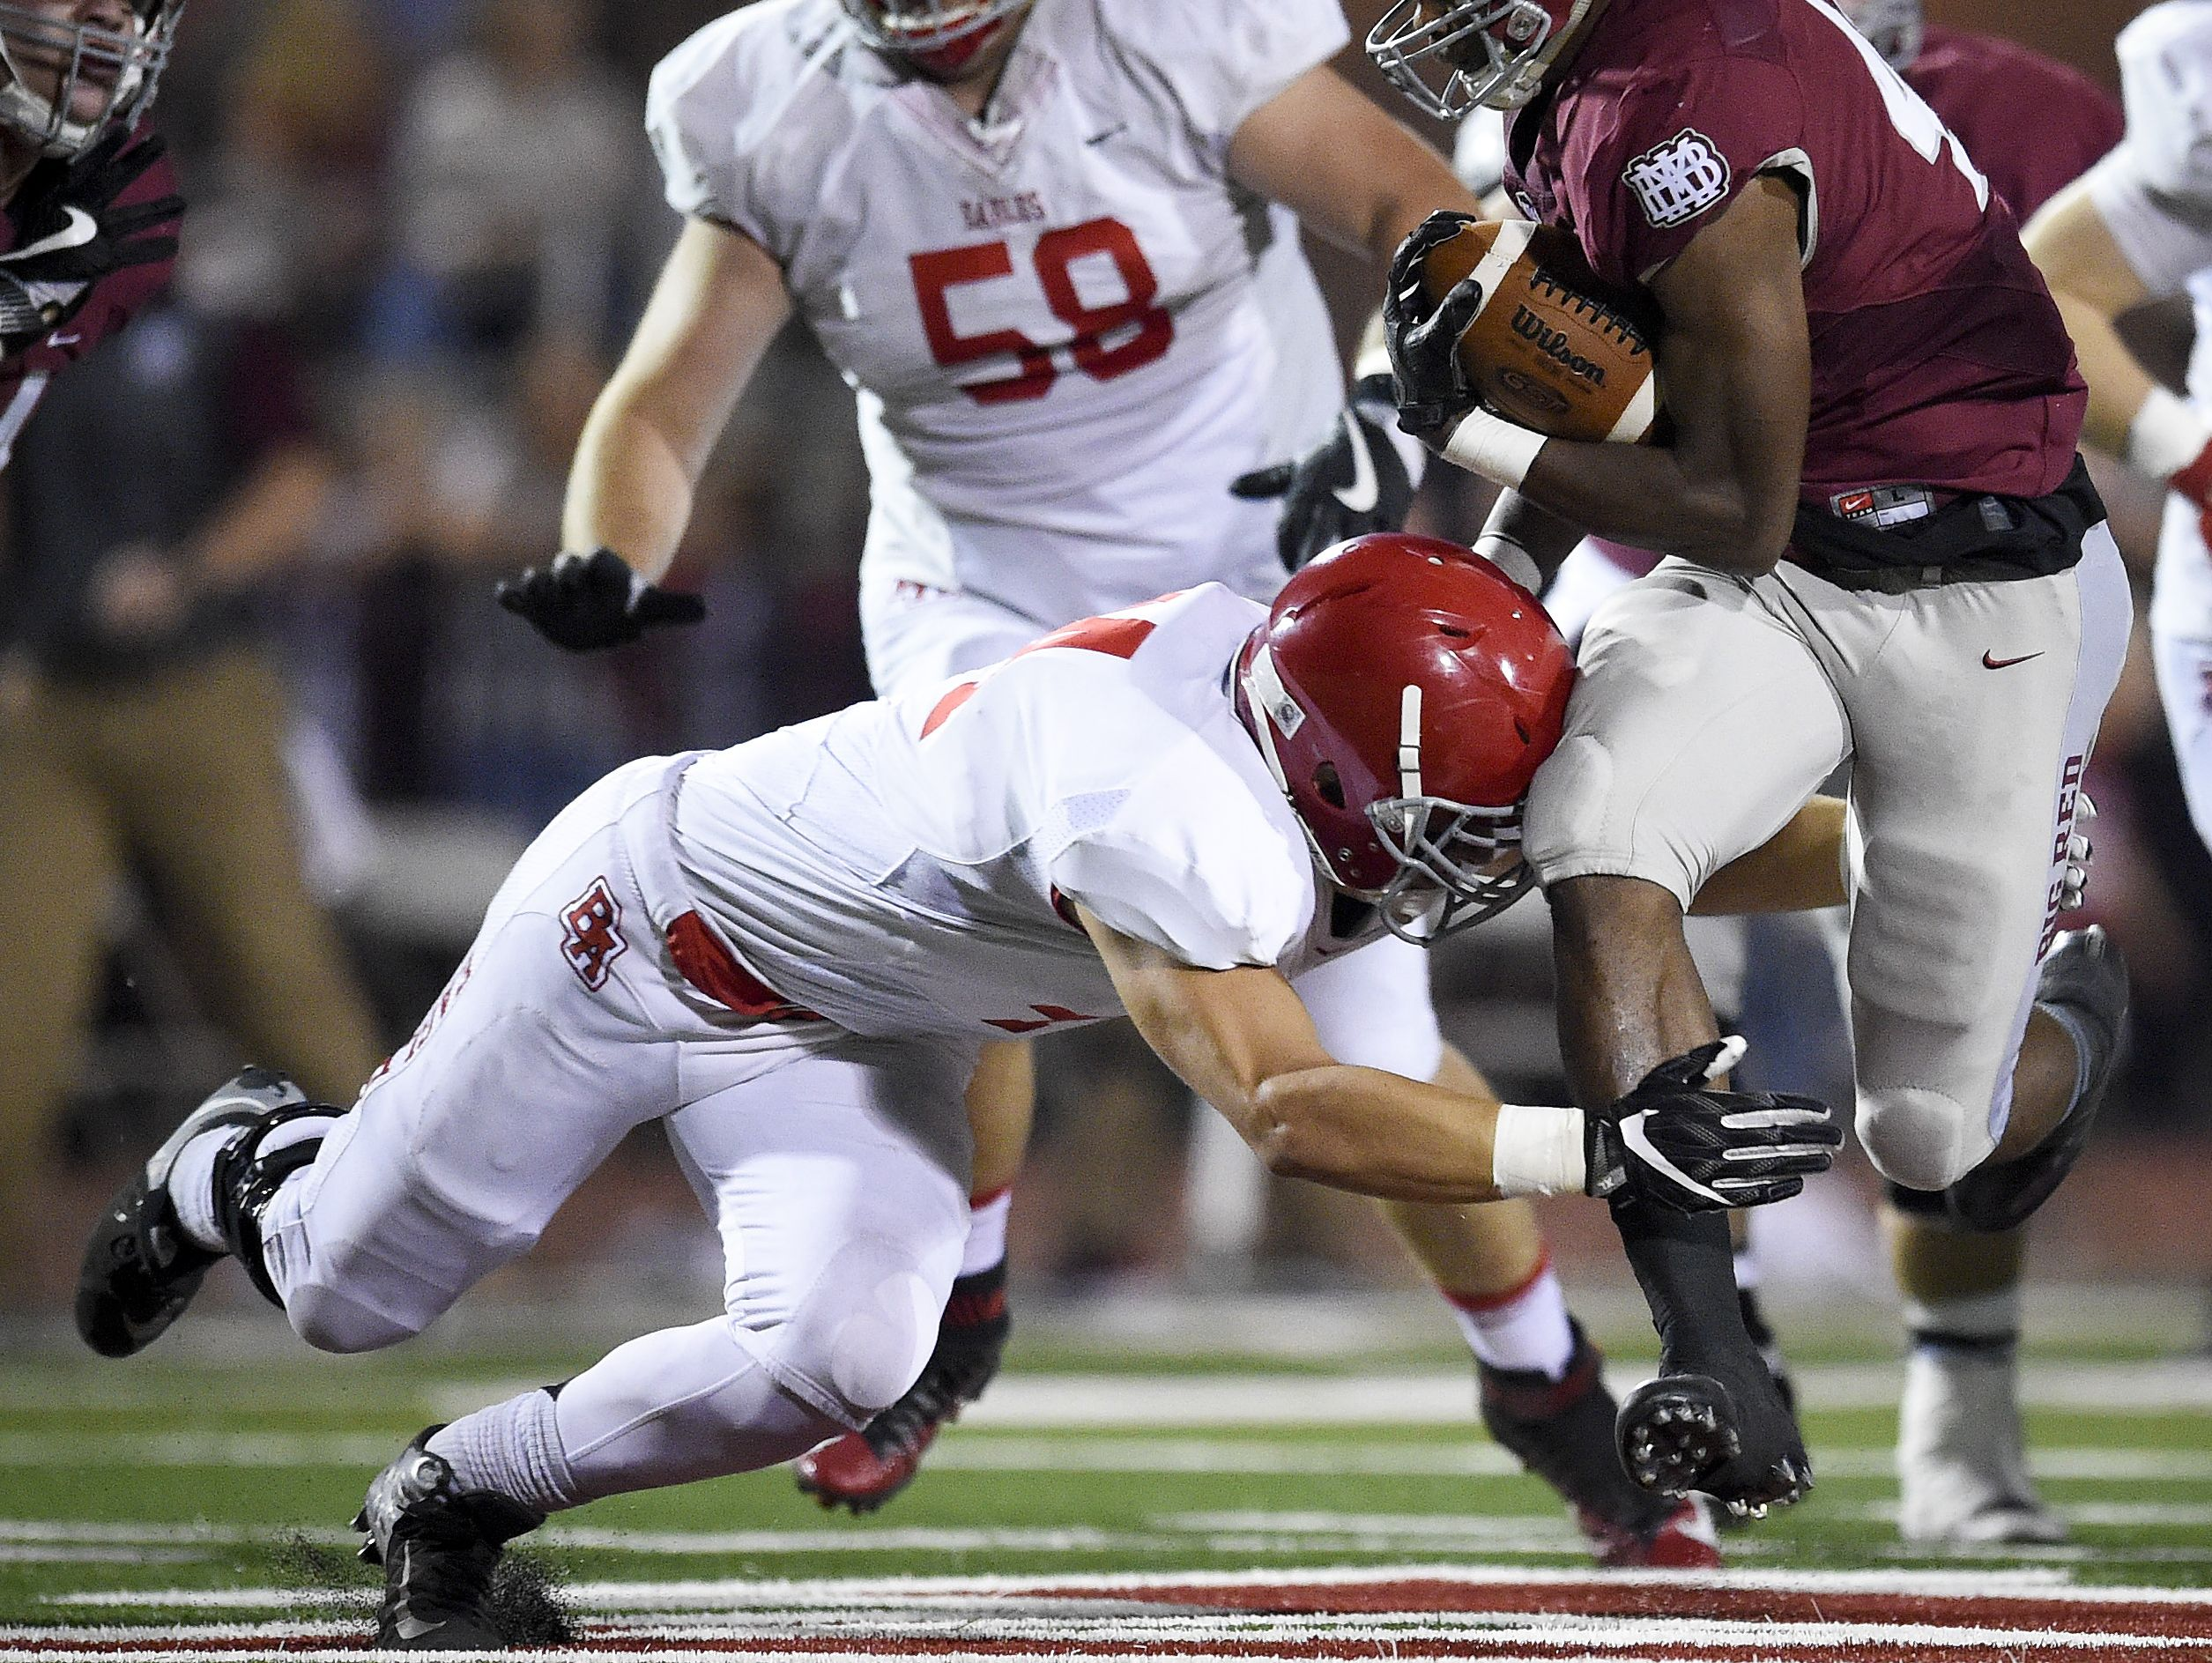 Brentwood Academy linebackerJackson Sirmon, left, tackles MBA running back Ty Chandler